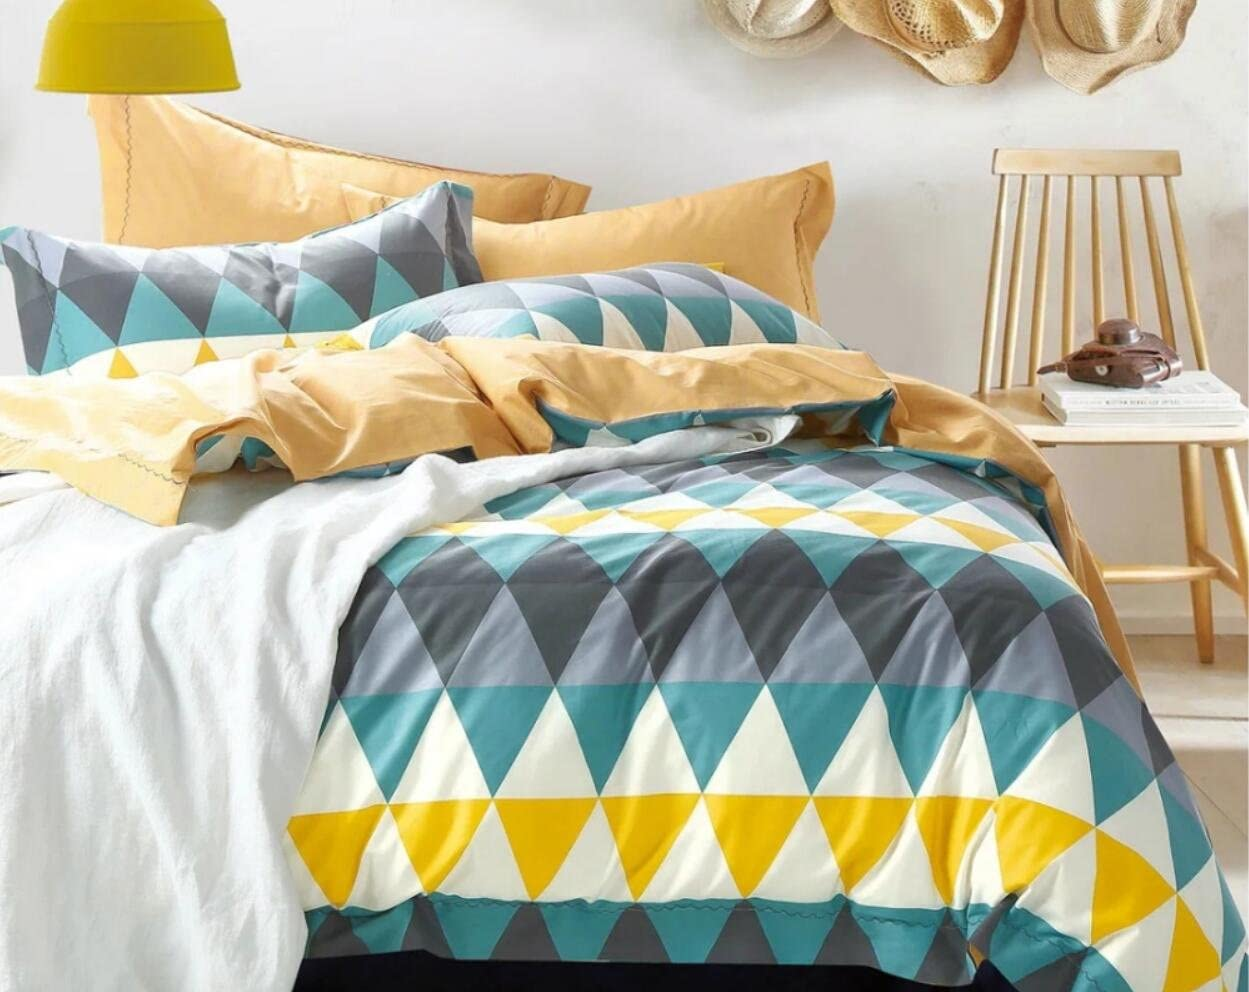 Modern Chevron Duvet Cover Set Blue and Gray Geometric Design Reversible Zig Zag Printed 100-percent Cotton 3 Piece Bedding Set (Queen, Teal)